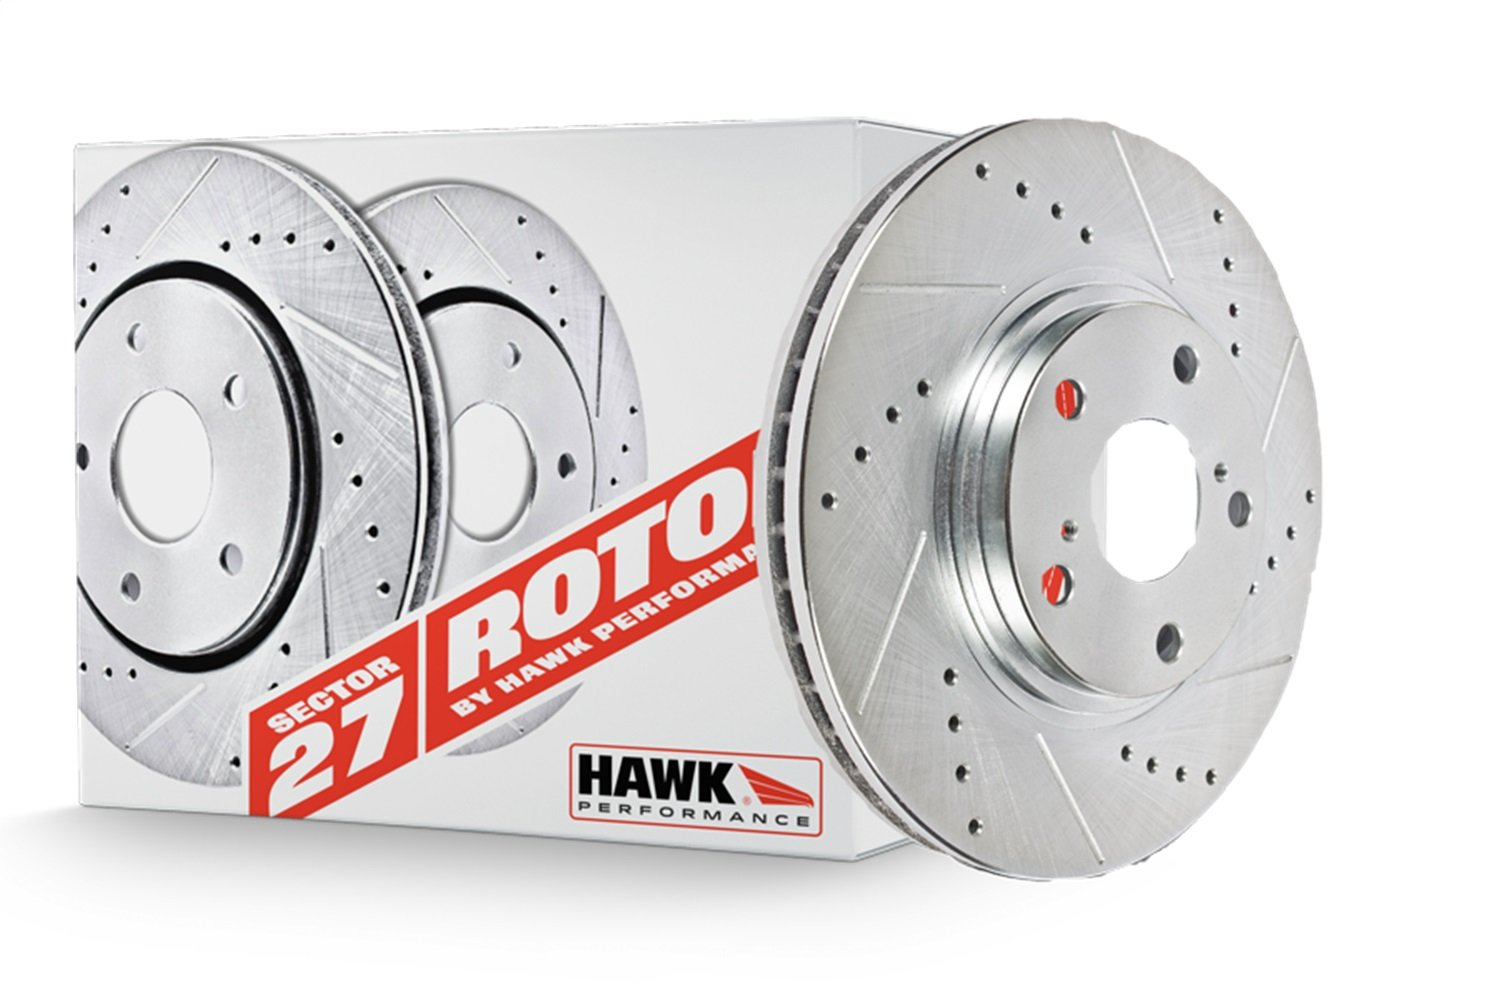 Hawk Performance (HR4932) Sector 27 Rotor